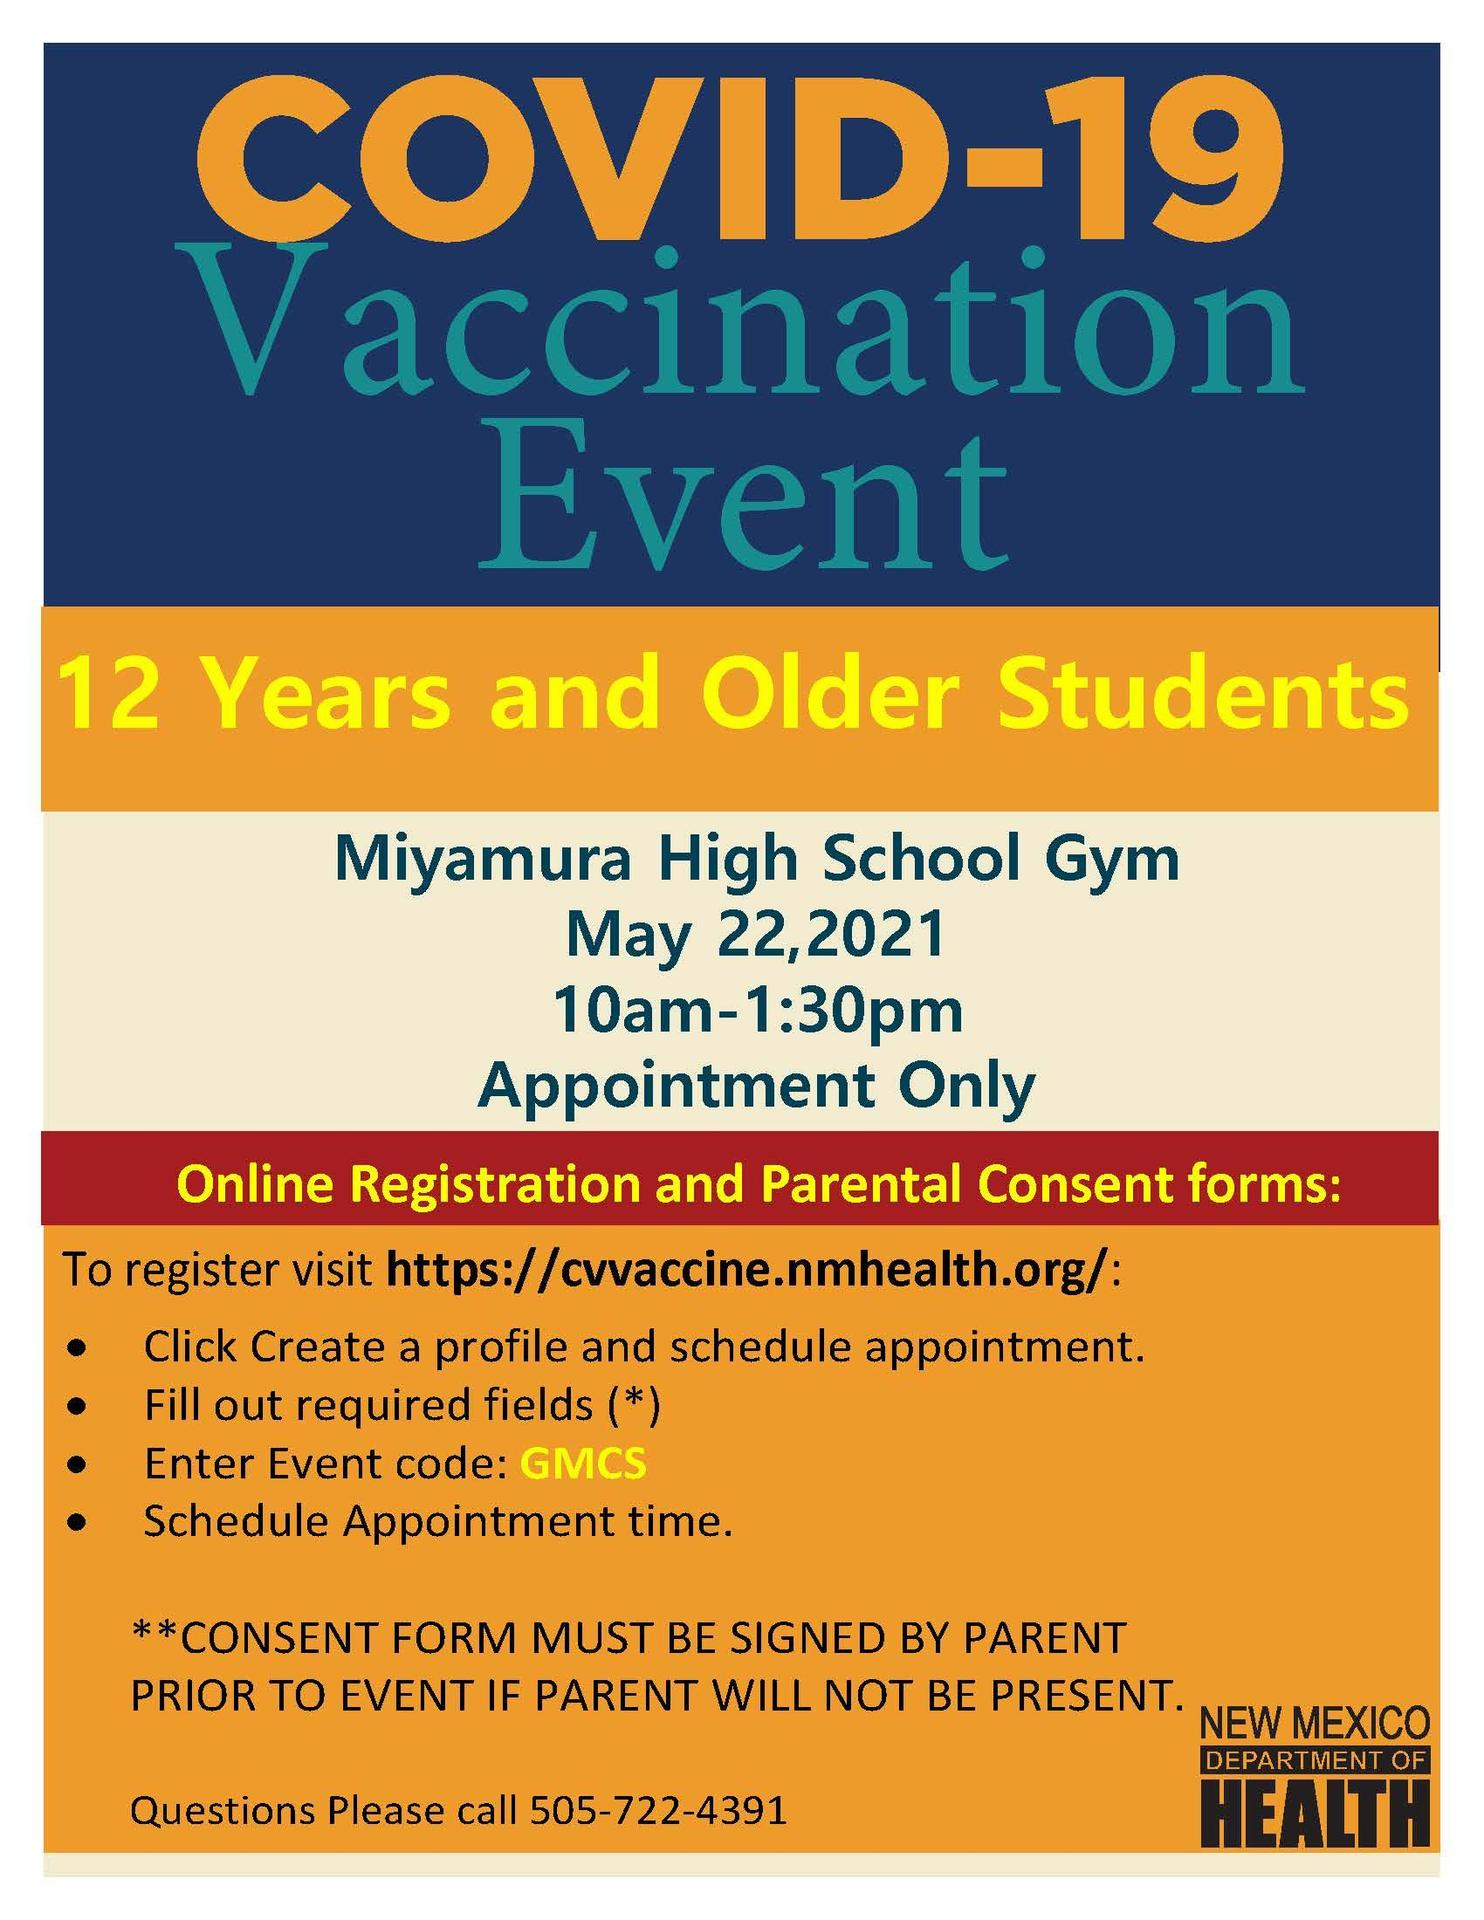 Covid Vaccine for ages 12 and older